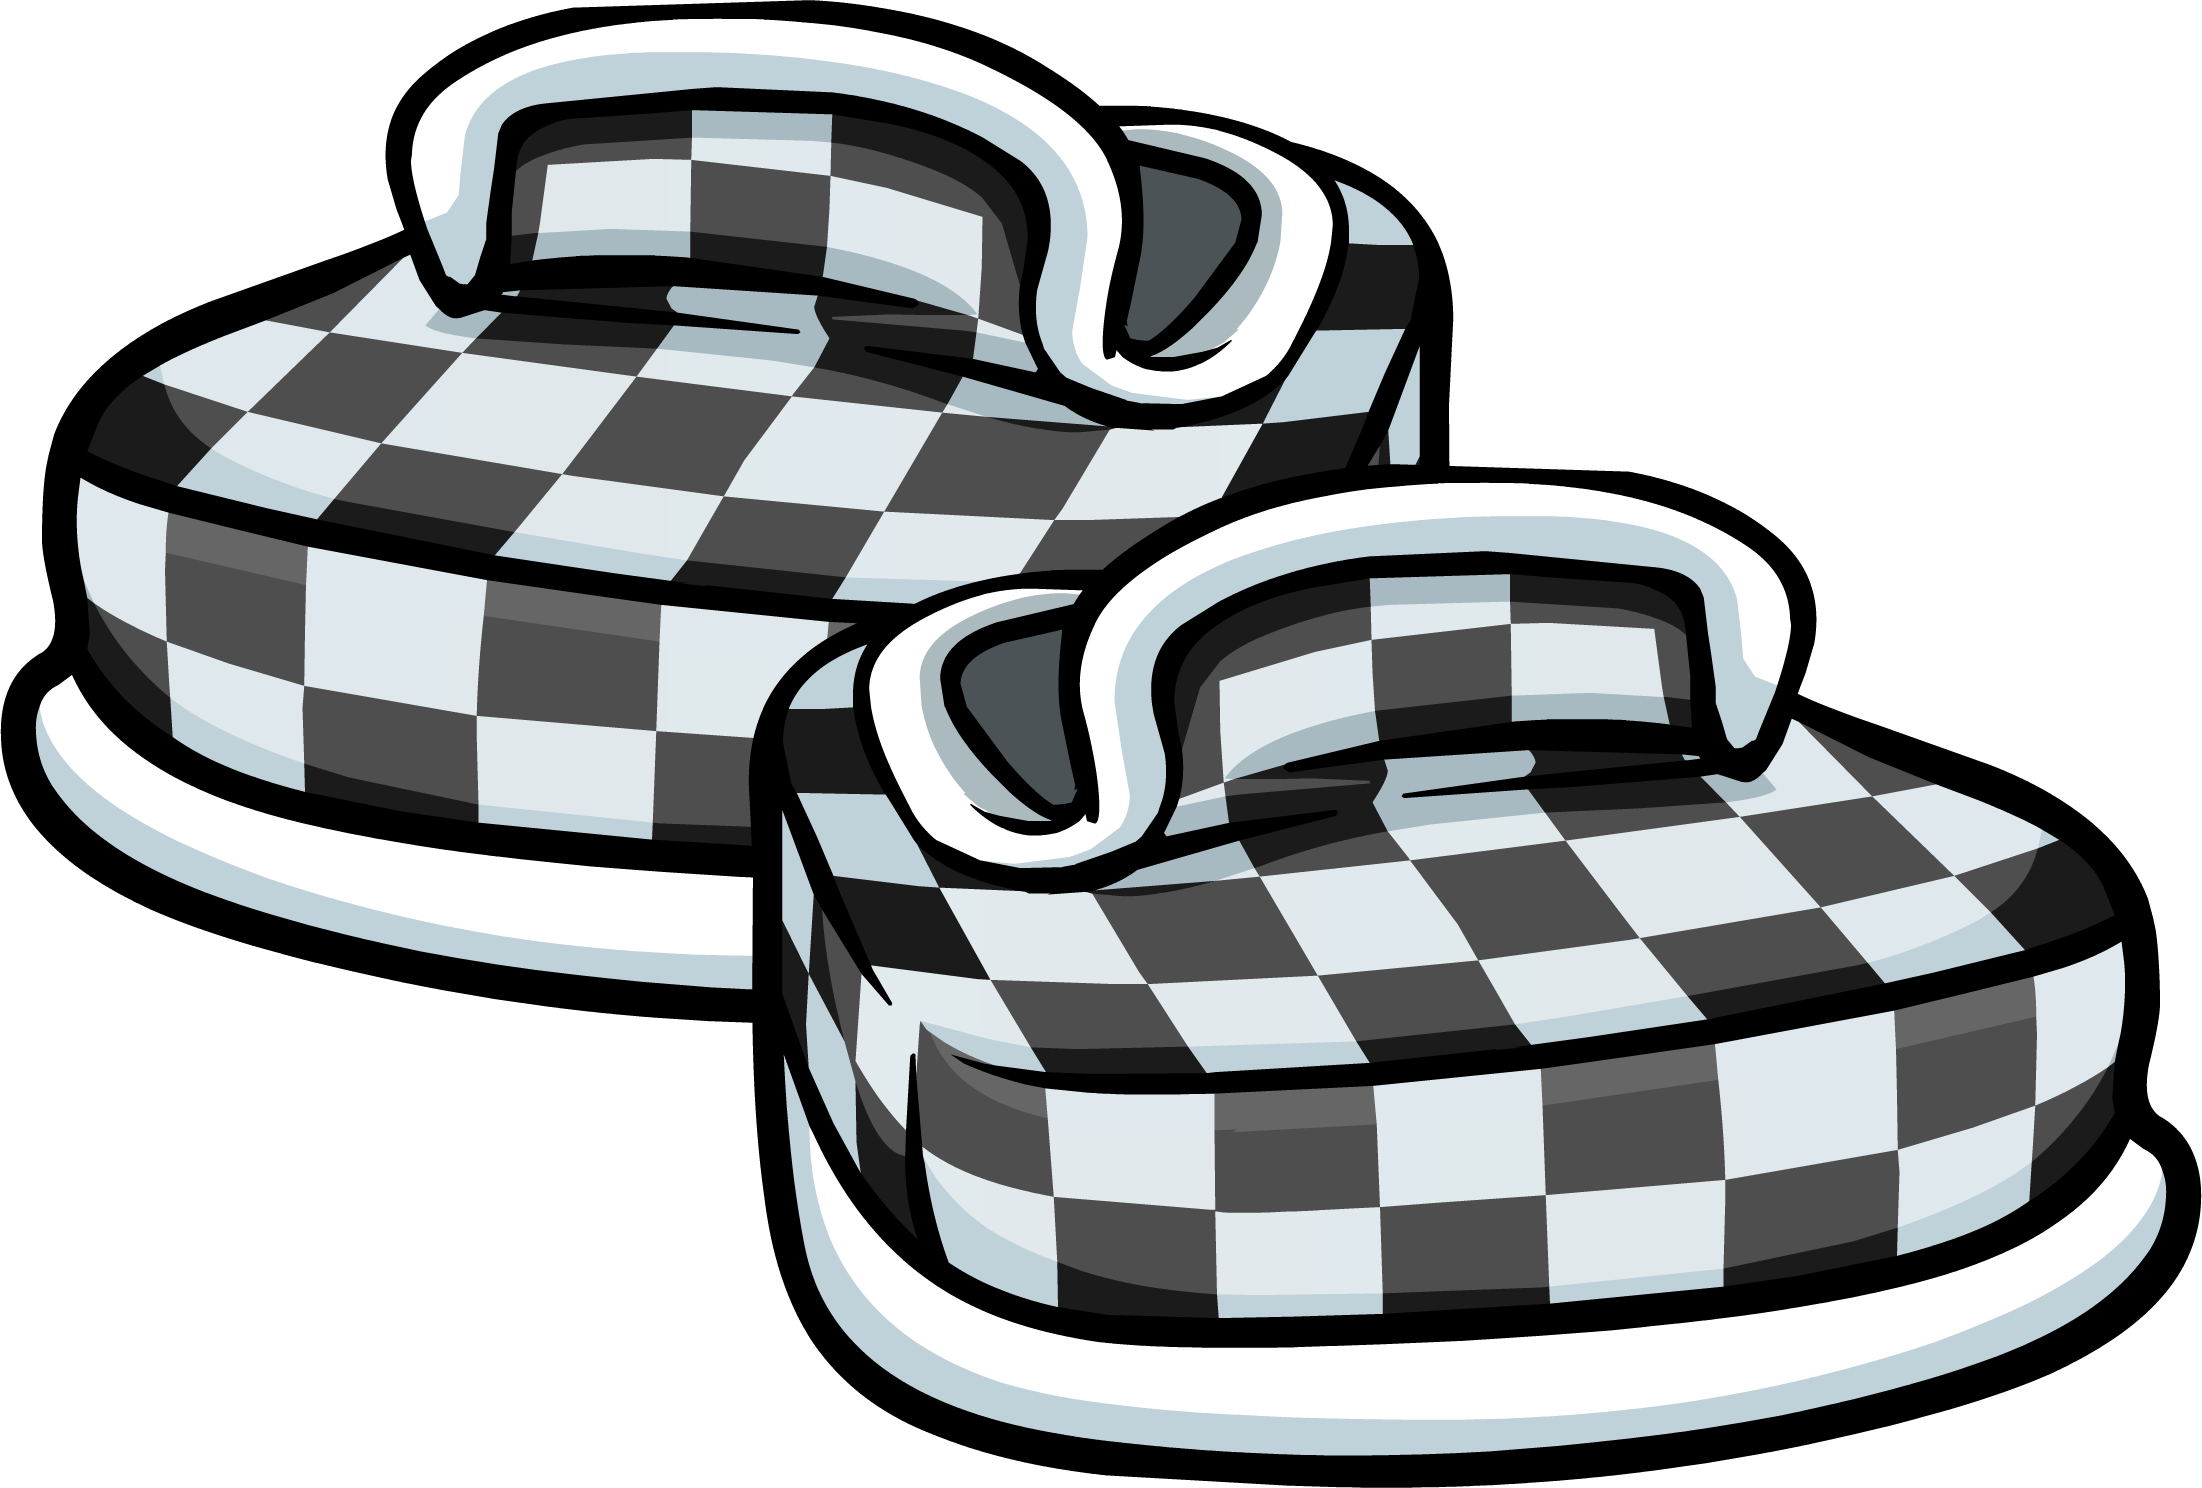 Black Checkered Shoes